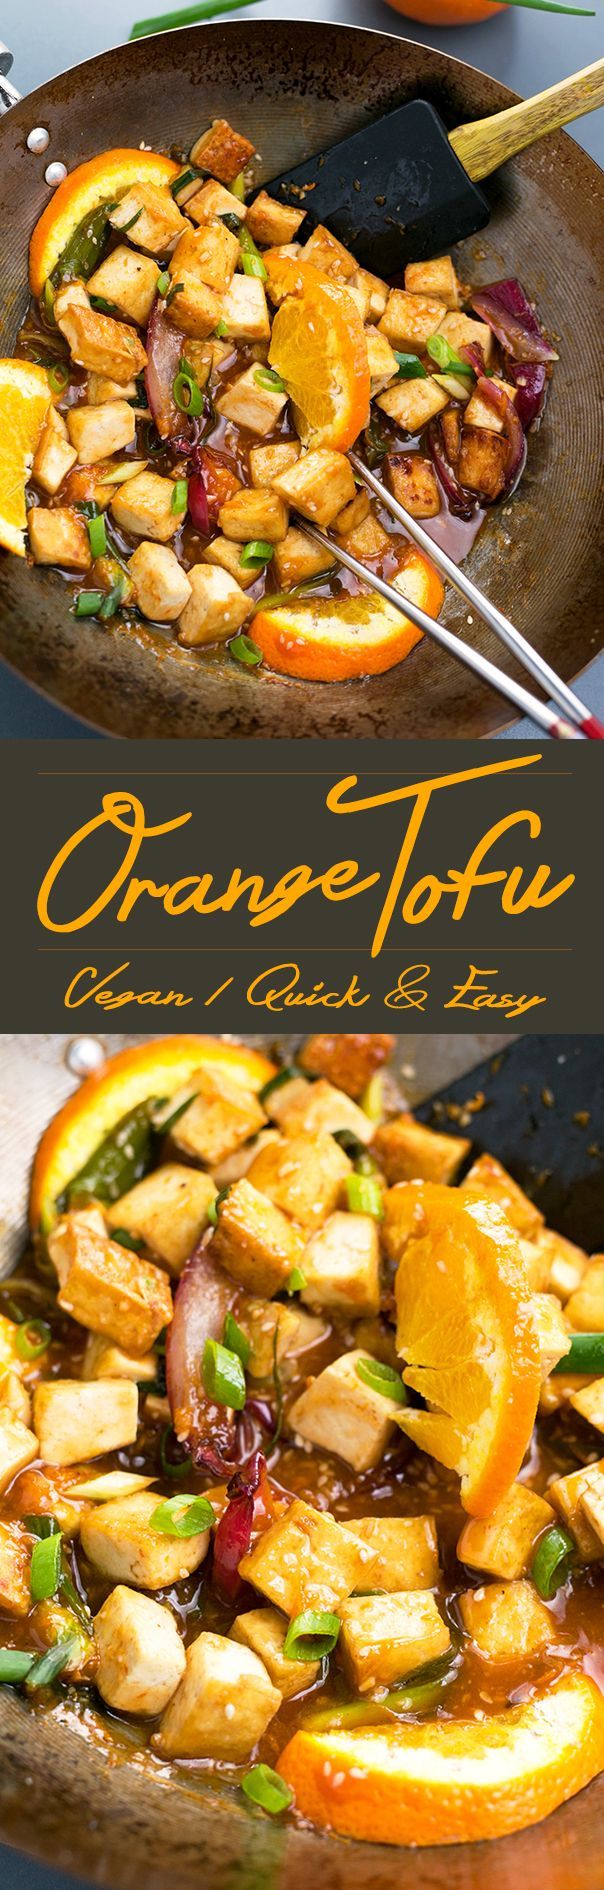 Asian Pan-Fried Orange Tofu recipe made with tofu, orange juice & zest, onions, sesame seeds, and more. A simple, healthy & delicious vegan lunch / dinner. #vegan #asian #orange #tofu #panfried #healthy #veganfood #orangezest #crazyvegankitchen